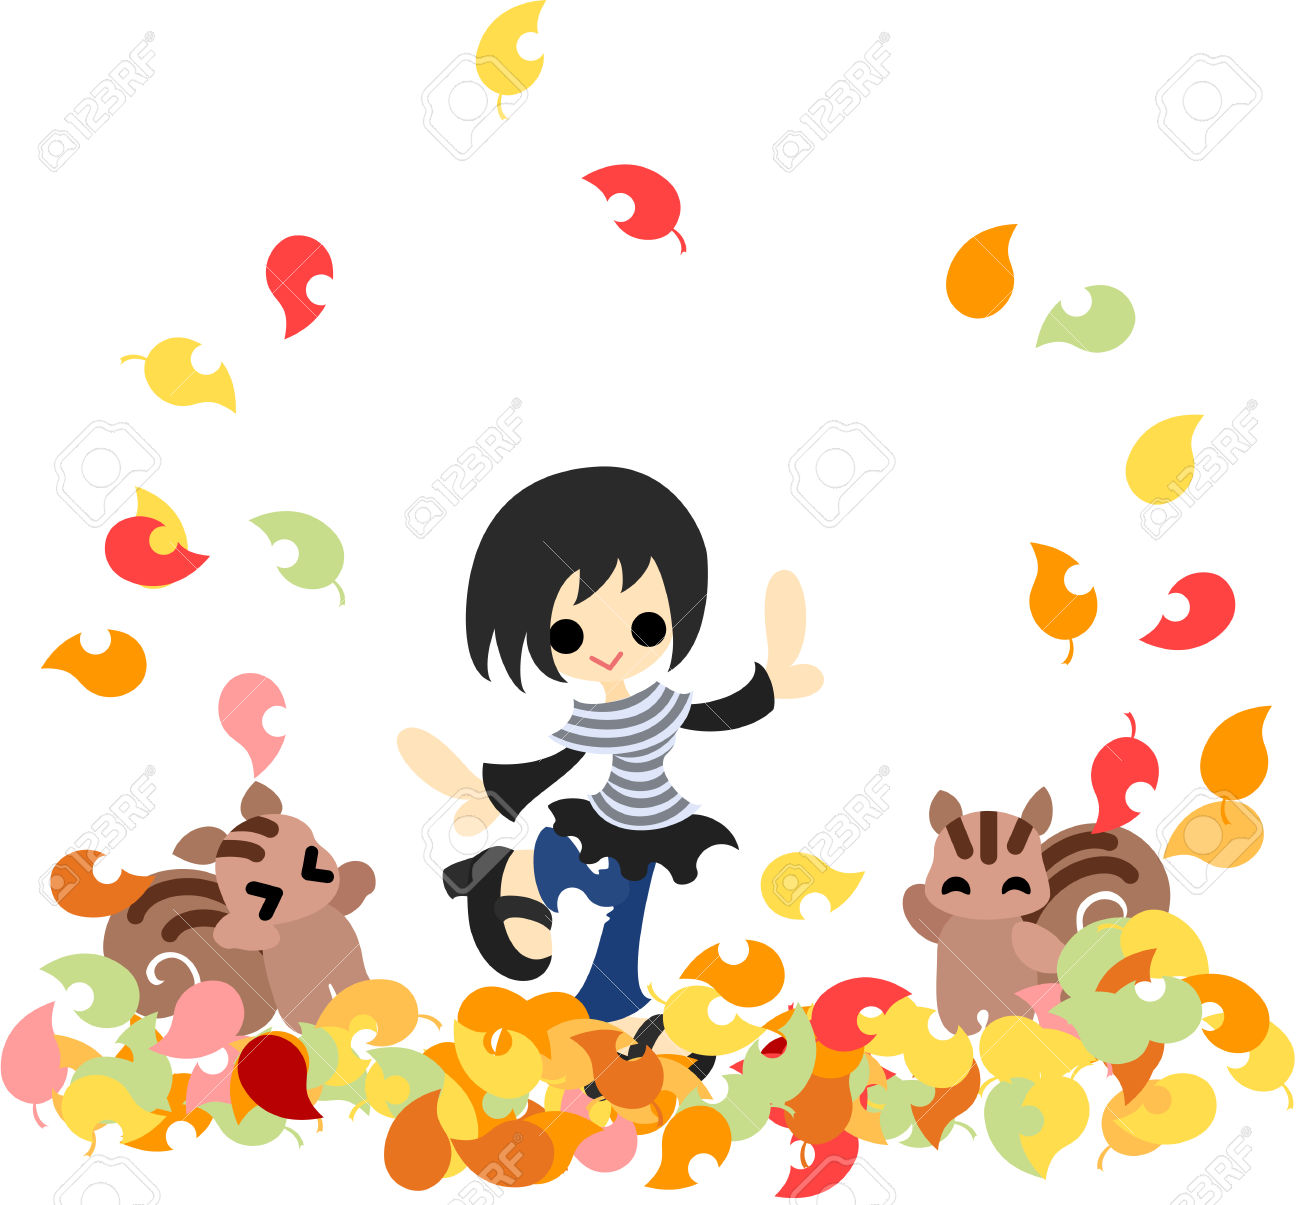 Carpet Of Leaves clipart #1, Download drawings